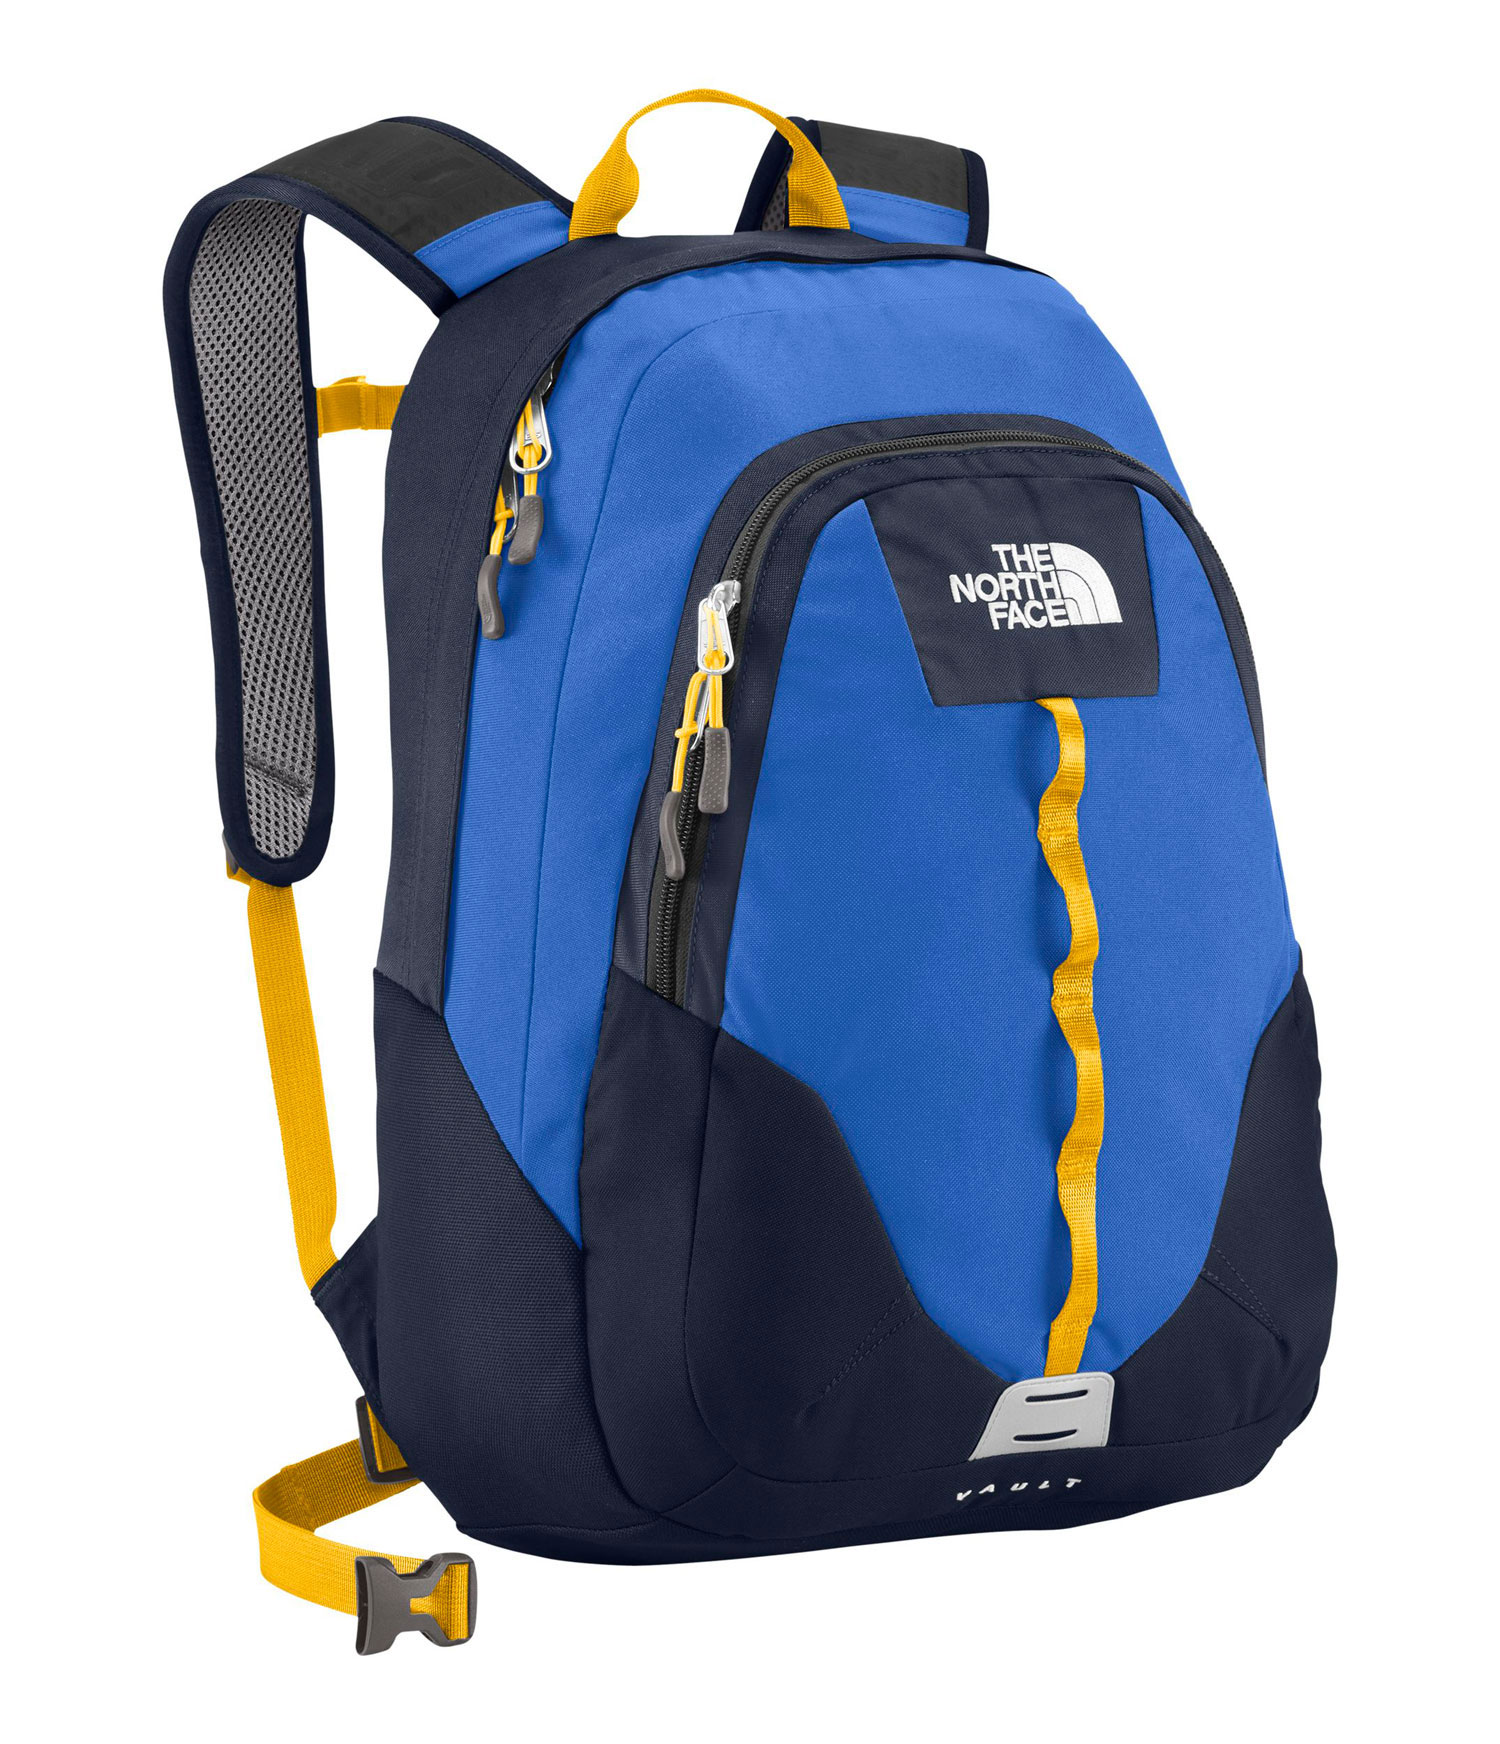 Key Features of The North Face Vault Backpack: Avg Weight: 1 lb 10 oz (730 g) Volume: 1587 in3 (26 liters) Fabric: 600D polyester, 300D mini-ripstop, 1200D polyester FlexVent ™ injection-molded shoulder straps Comfortable, stitched foam back panel Large main compartment fits books and binders Secondary compartment with organization Women-specific version of this daypack available on page 20 - $55.00